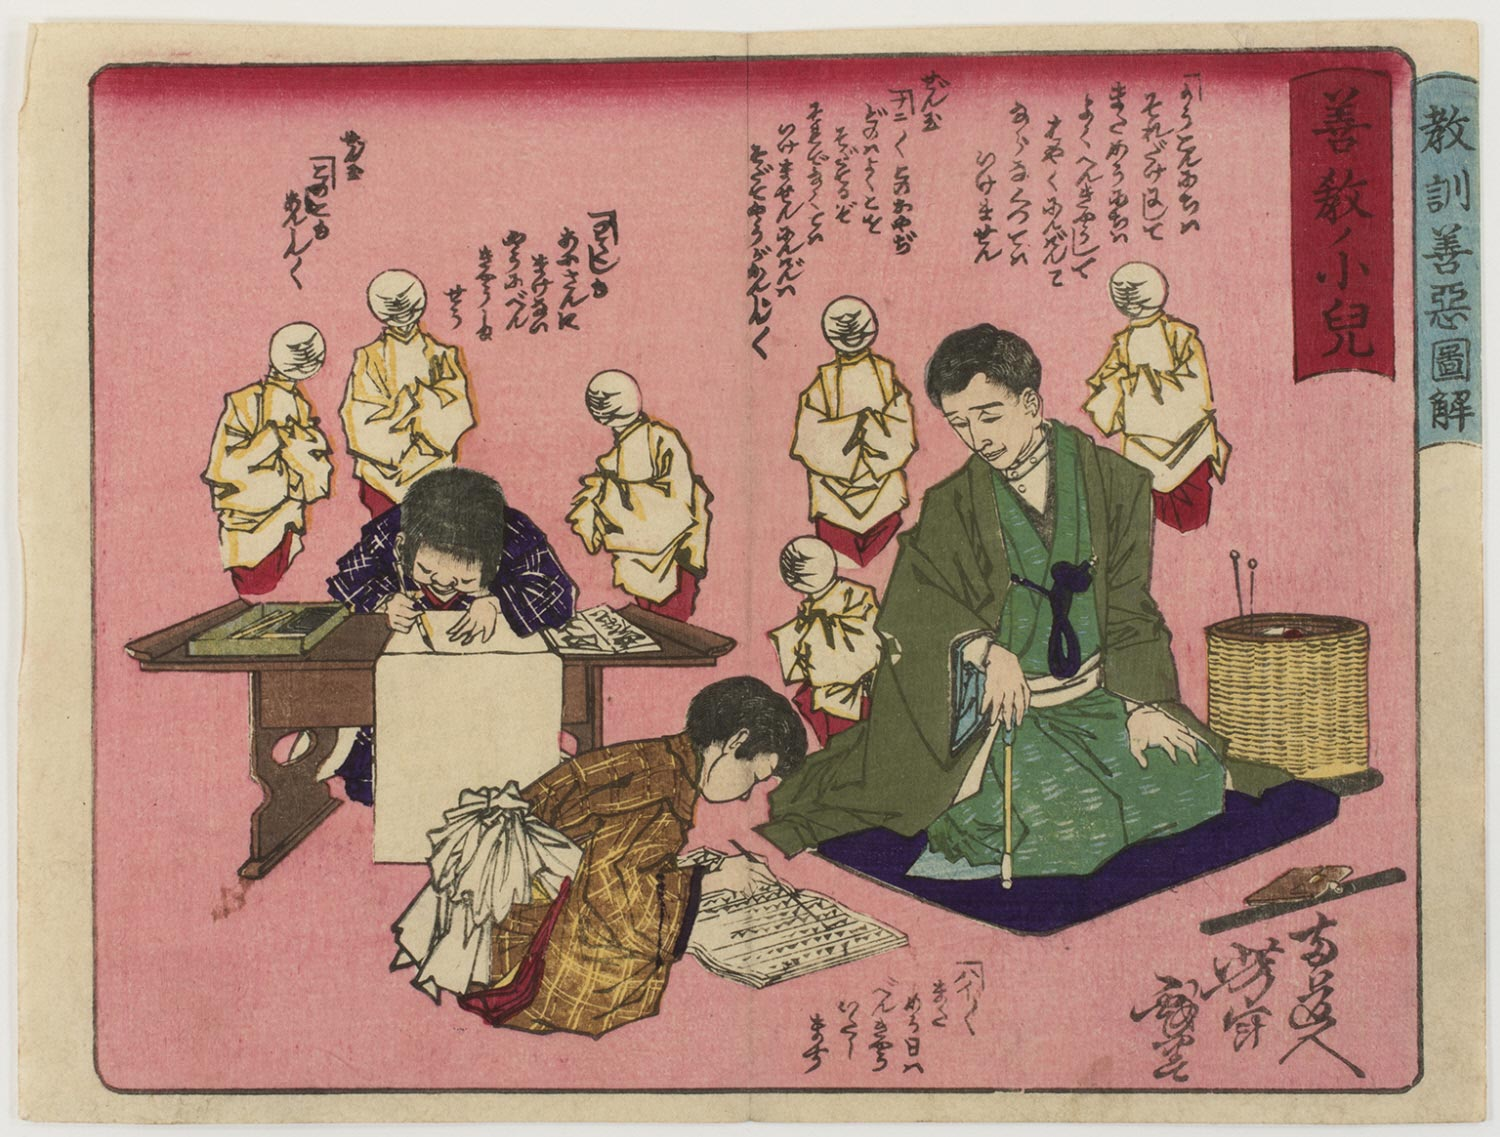 A Well-Taught Child, from the series Moral Lessons through Pictures of Good and Evil (Kyōkun zenaku zukai)